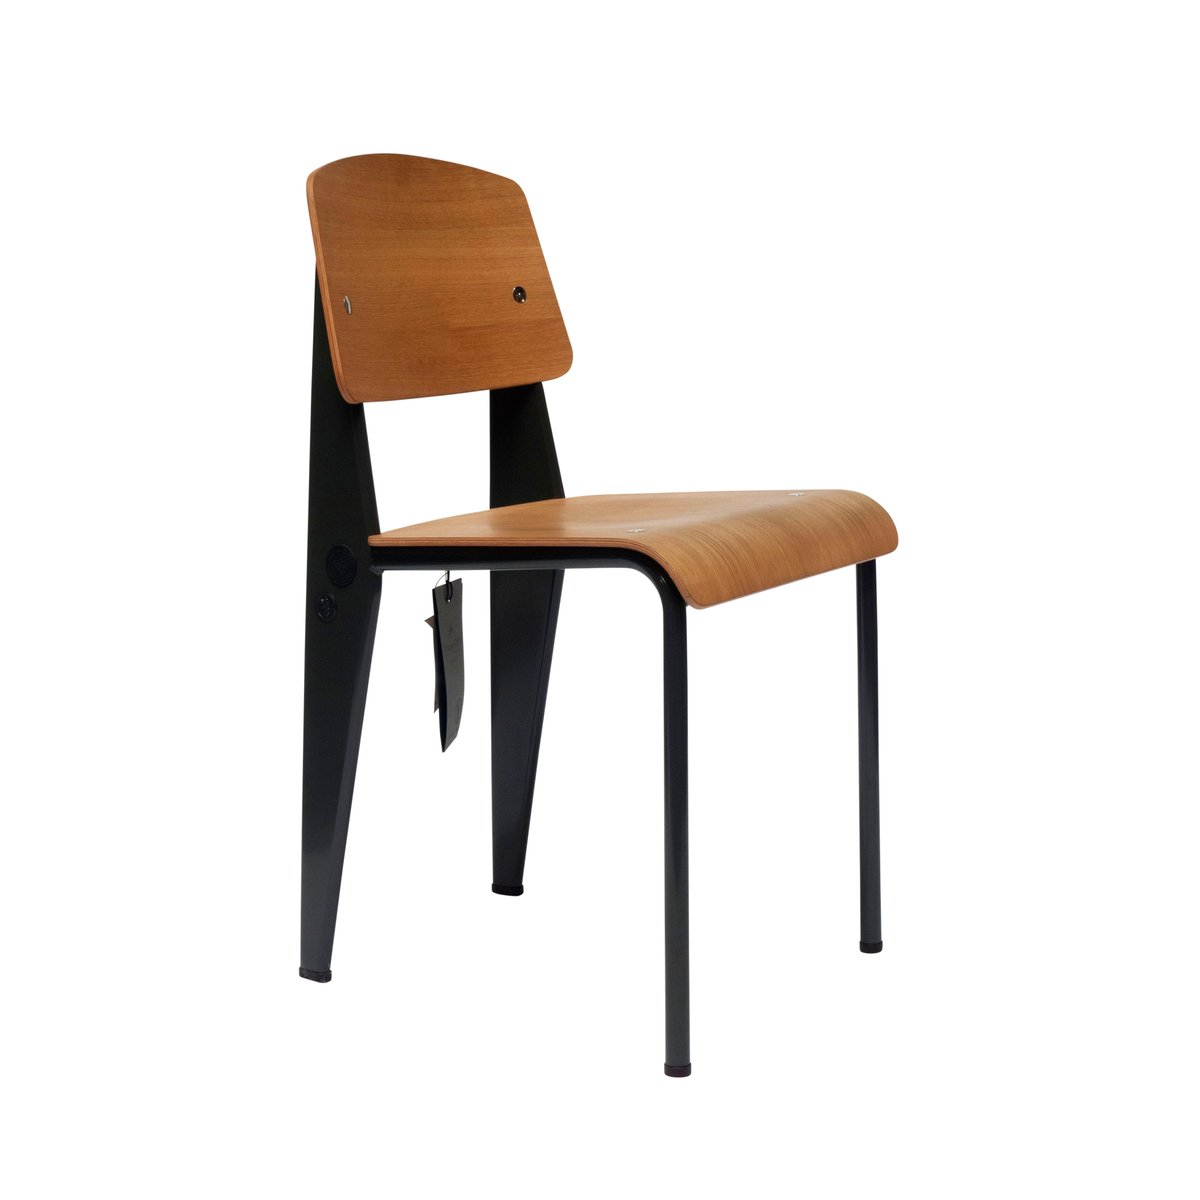 prouve standard chair lightweight beach chairs uk g star raw by jean prouvé for vitra 2011